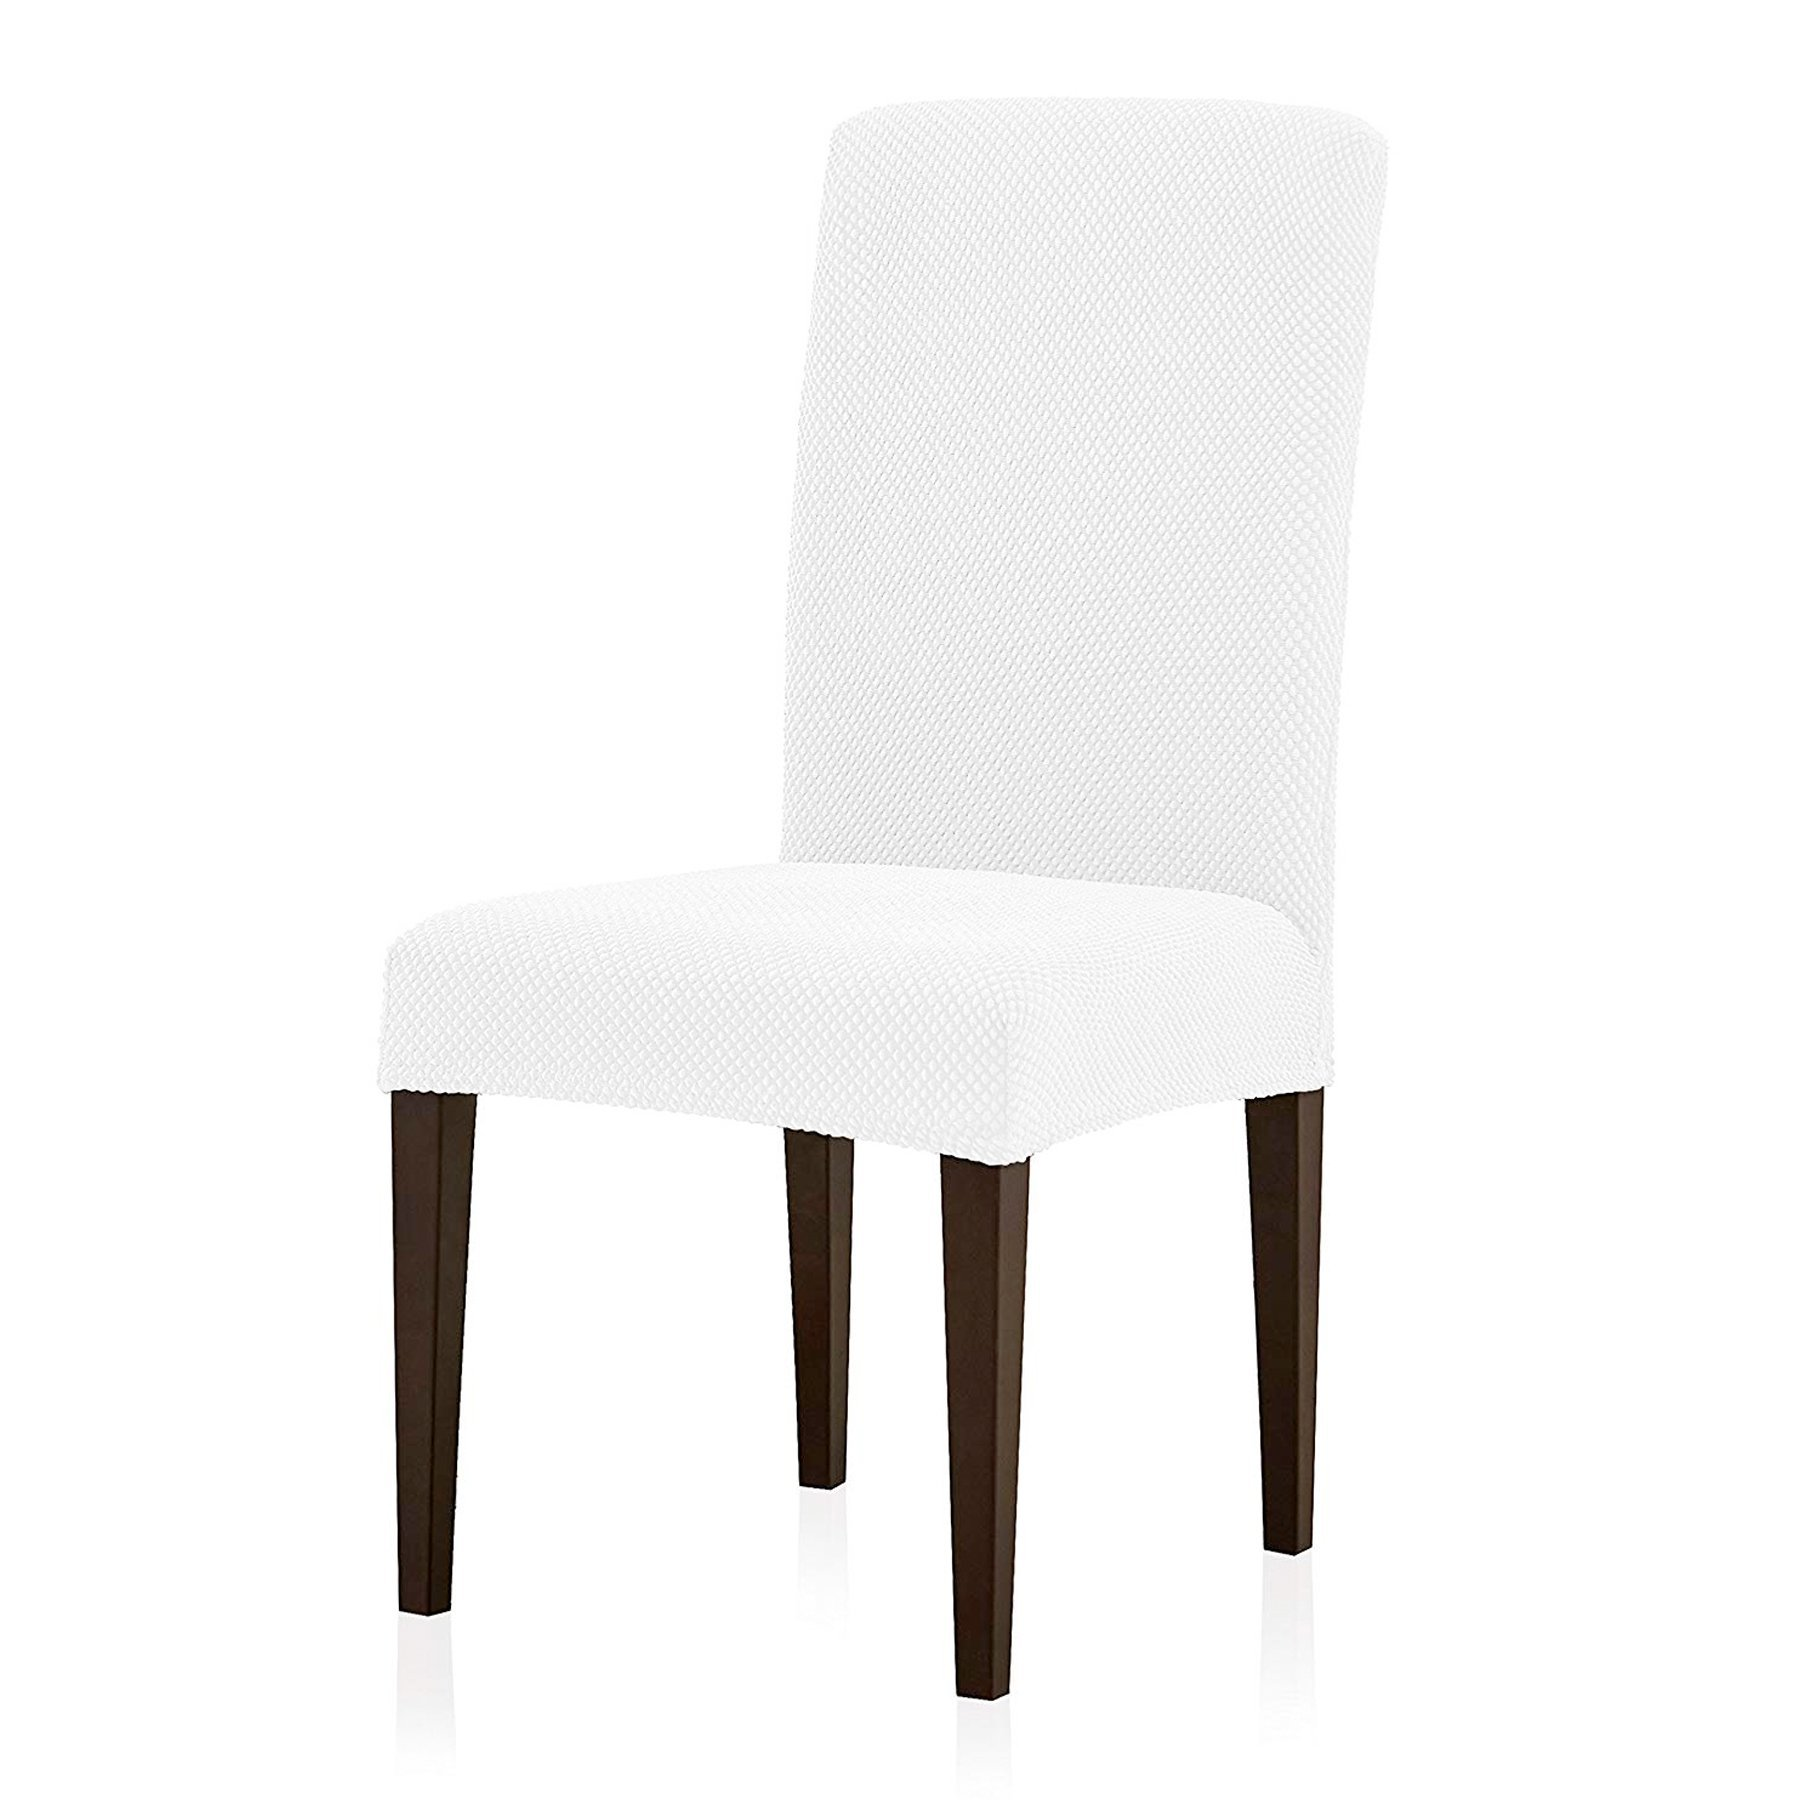 Subrtex Jacquard Dining Room Chair Slipcovers Sets, Stretch Chair Furniture Protector Covers, Removable Washable Elastic Parsons Chair Cover for Dining Room, Hotel, Ceremony (4 PIECES, White Jacquard)